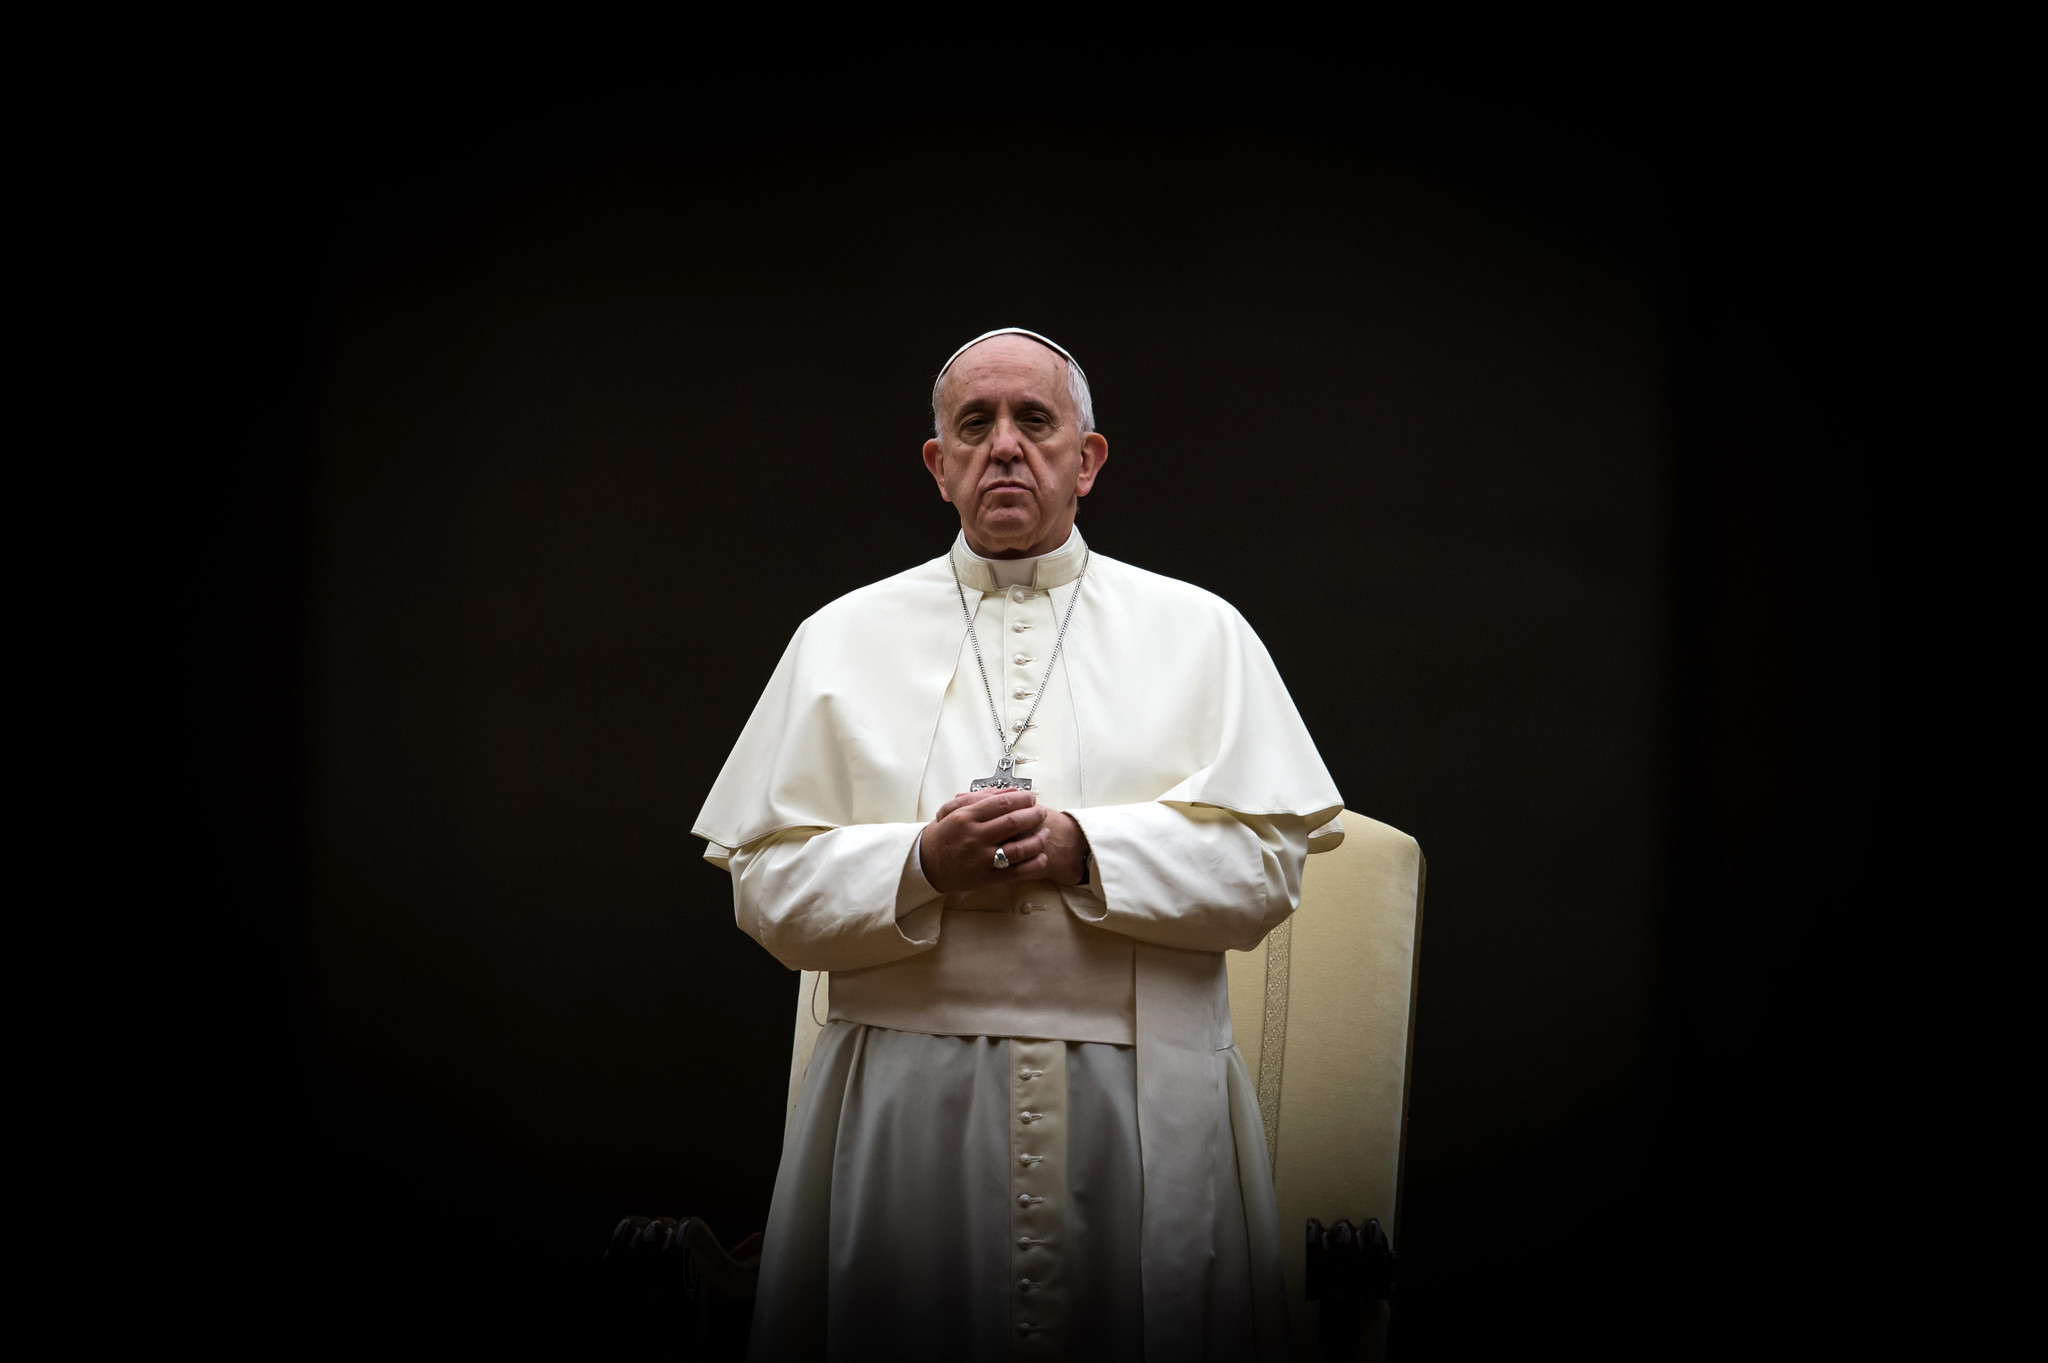 教宗方濟各 Pope Francis (圖/Catholic Church England and Wales/CC BY-NC-SA 2.0)